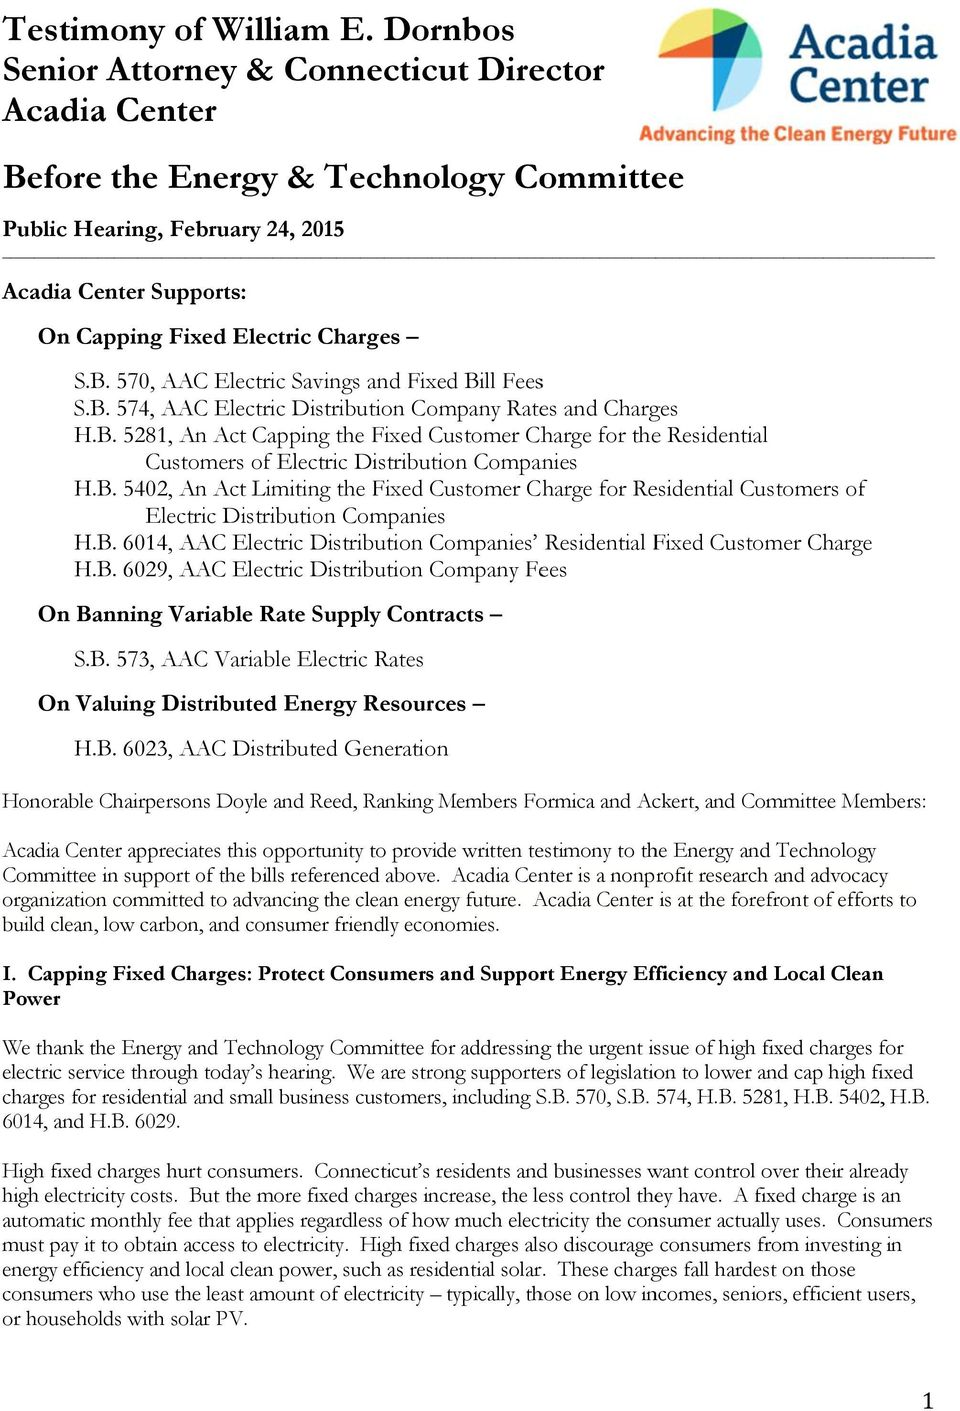 B. 574, AAC Electric Distribution Company Rates and Charges H.B. 5281, An Act Capping the Fixed Customer Charge for the Residential Customers of Electric Distribution Companies H.B. 5402, An Act Limiting the Fixed Customer Charge for Residential Customers of Electric Distribution Companies H.